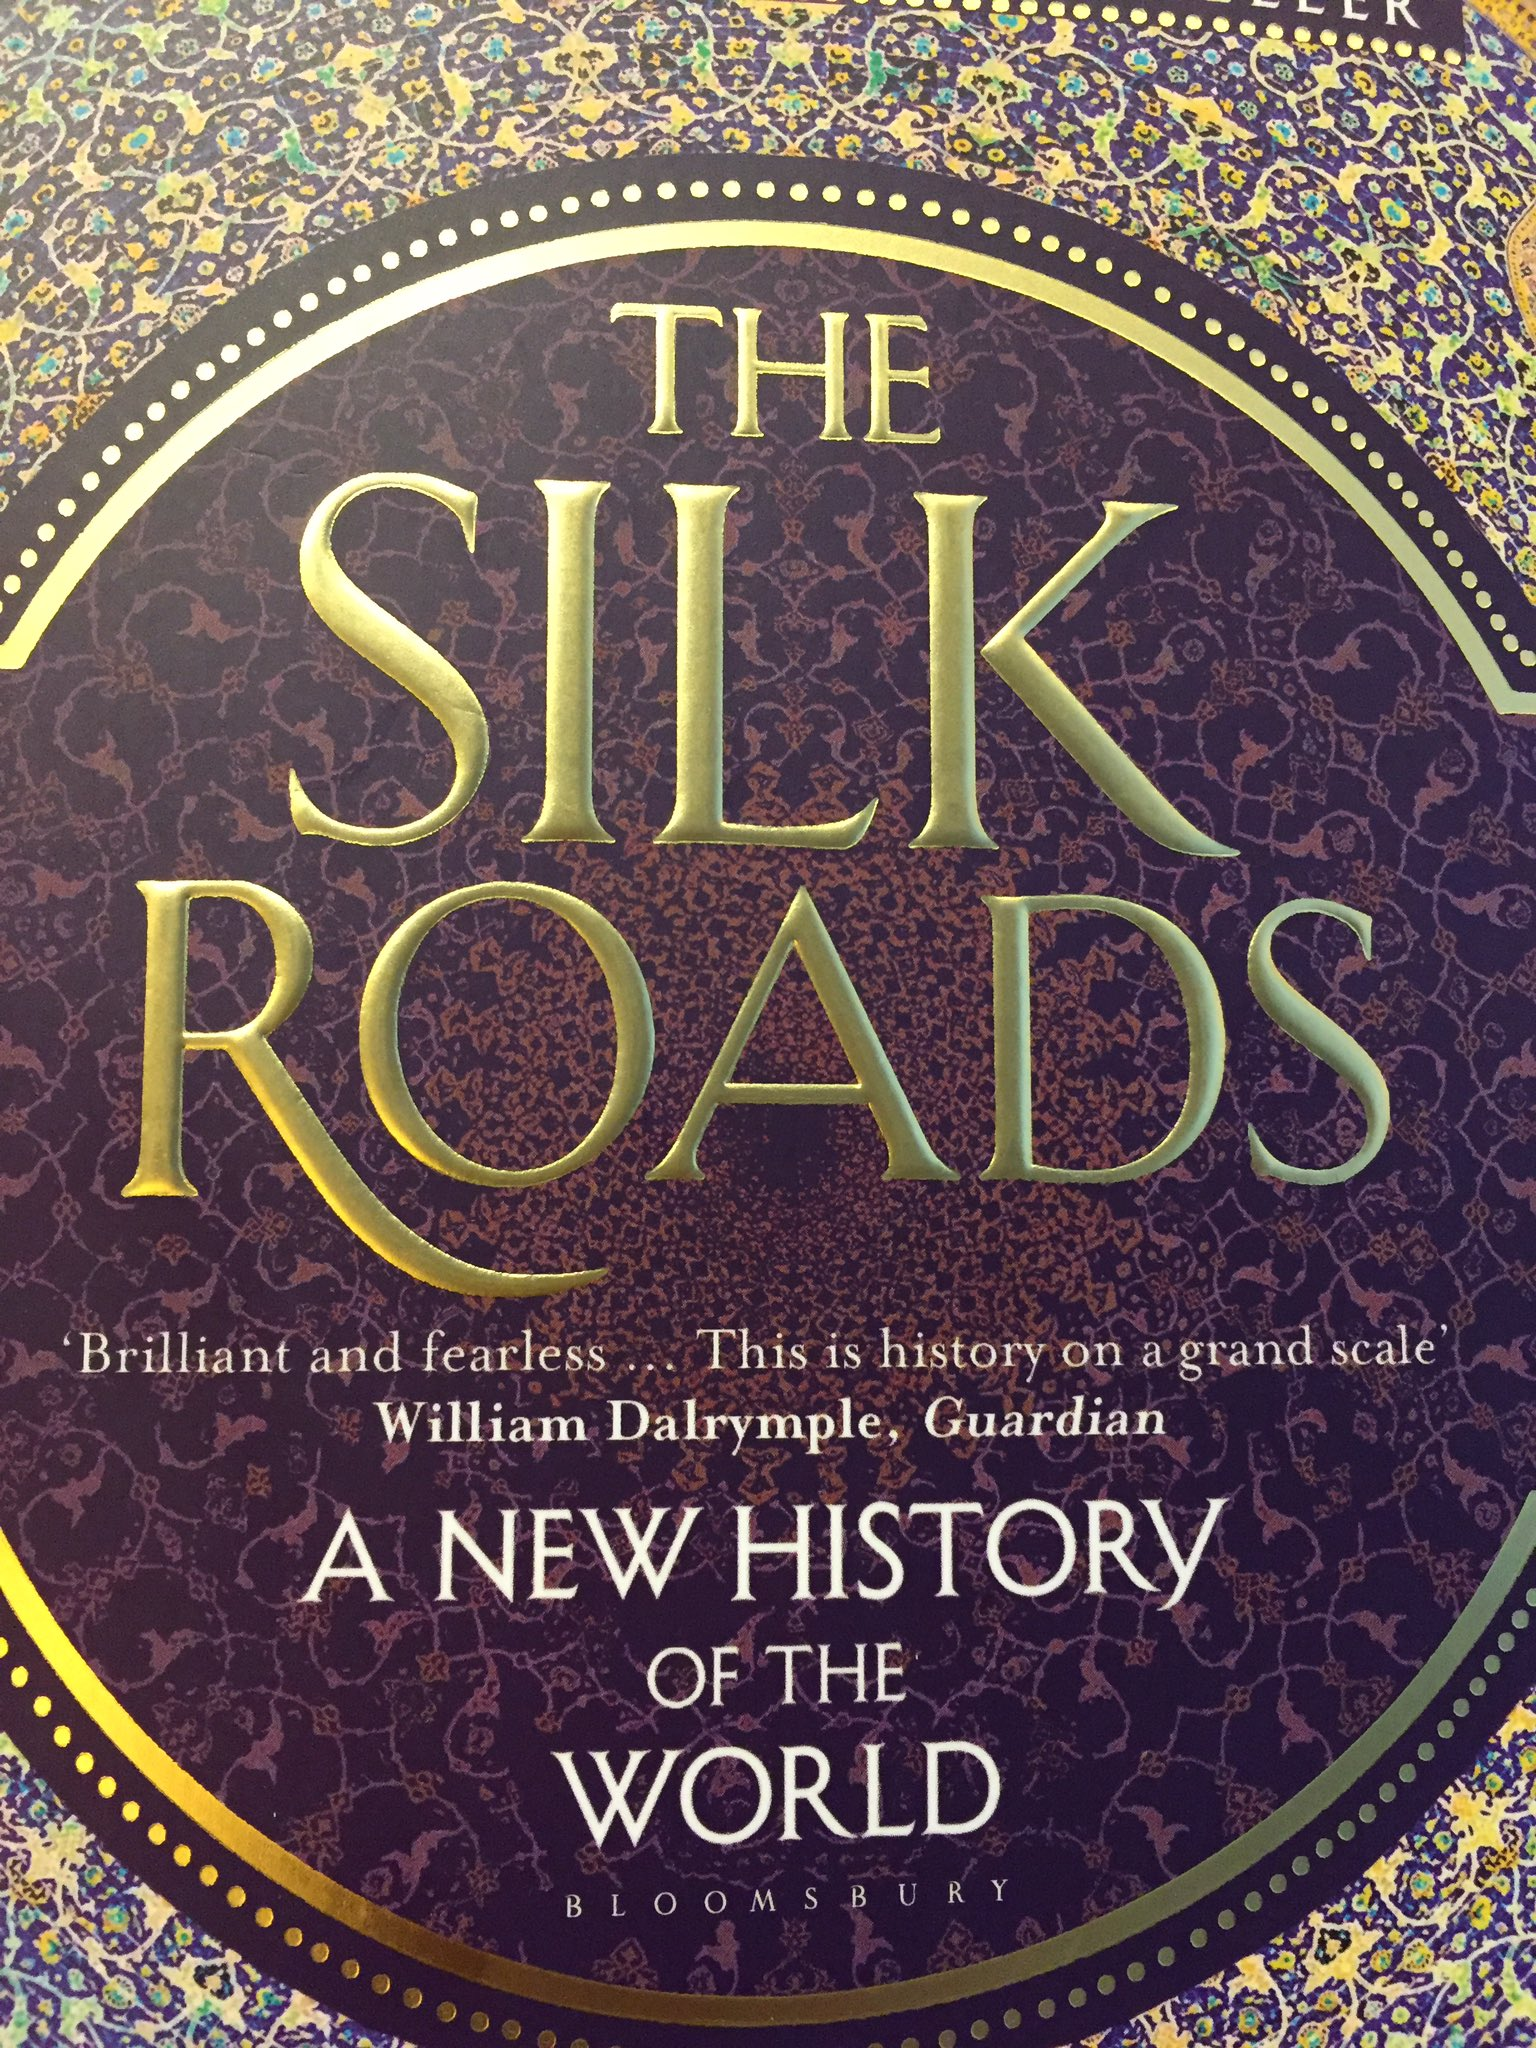 So glad I saved @peterfrankopan's The Silk Roads for this trip. Wonderful to be reading about Persia while flying over it https://t.co/3SSNuXZspG